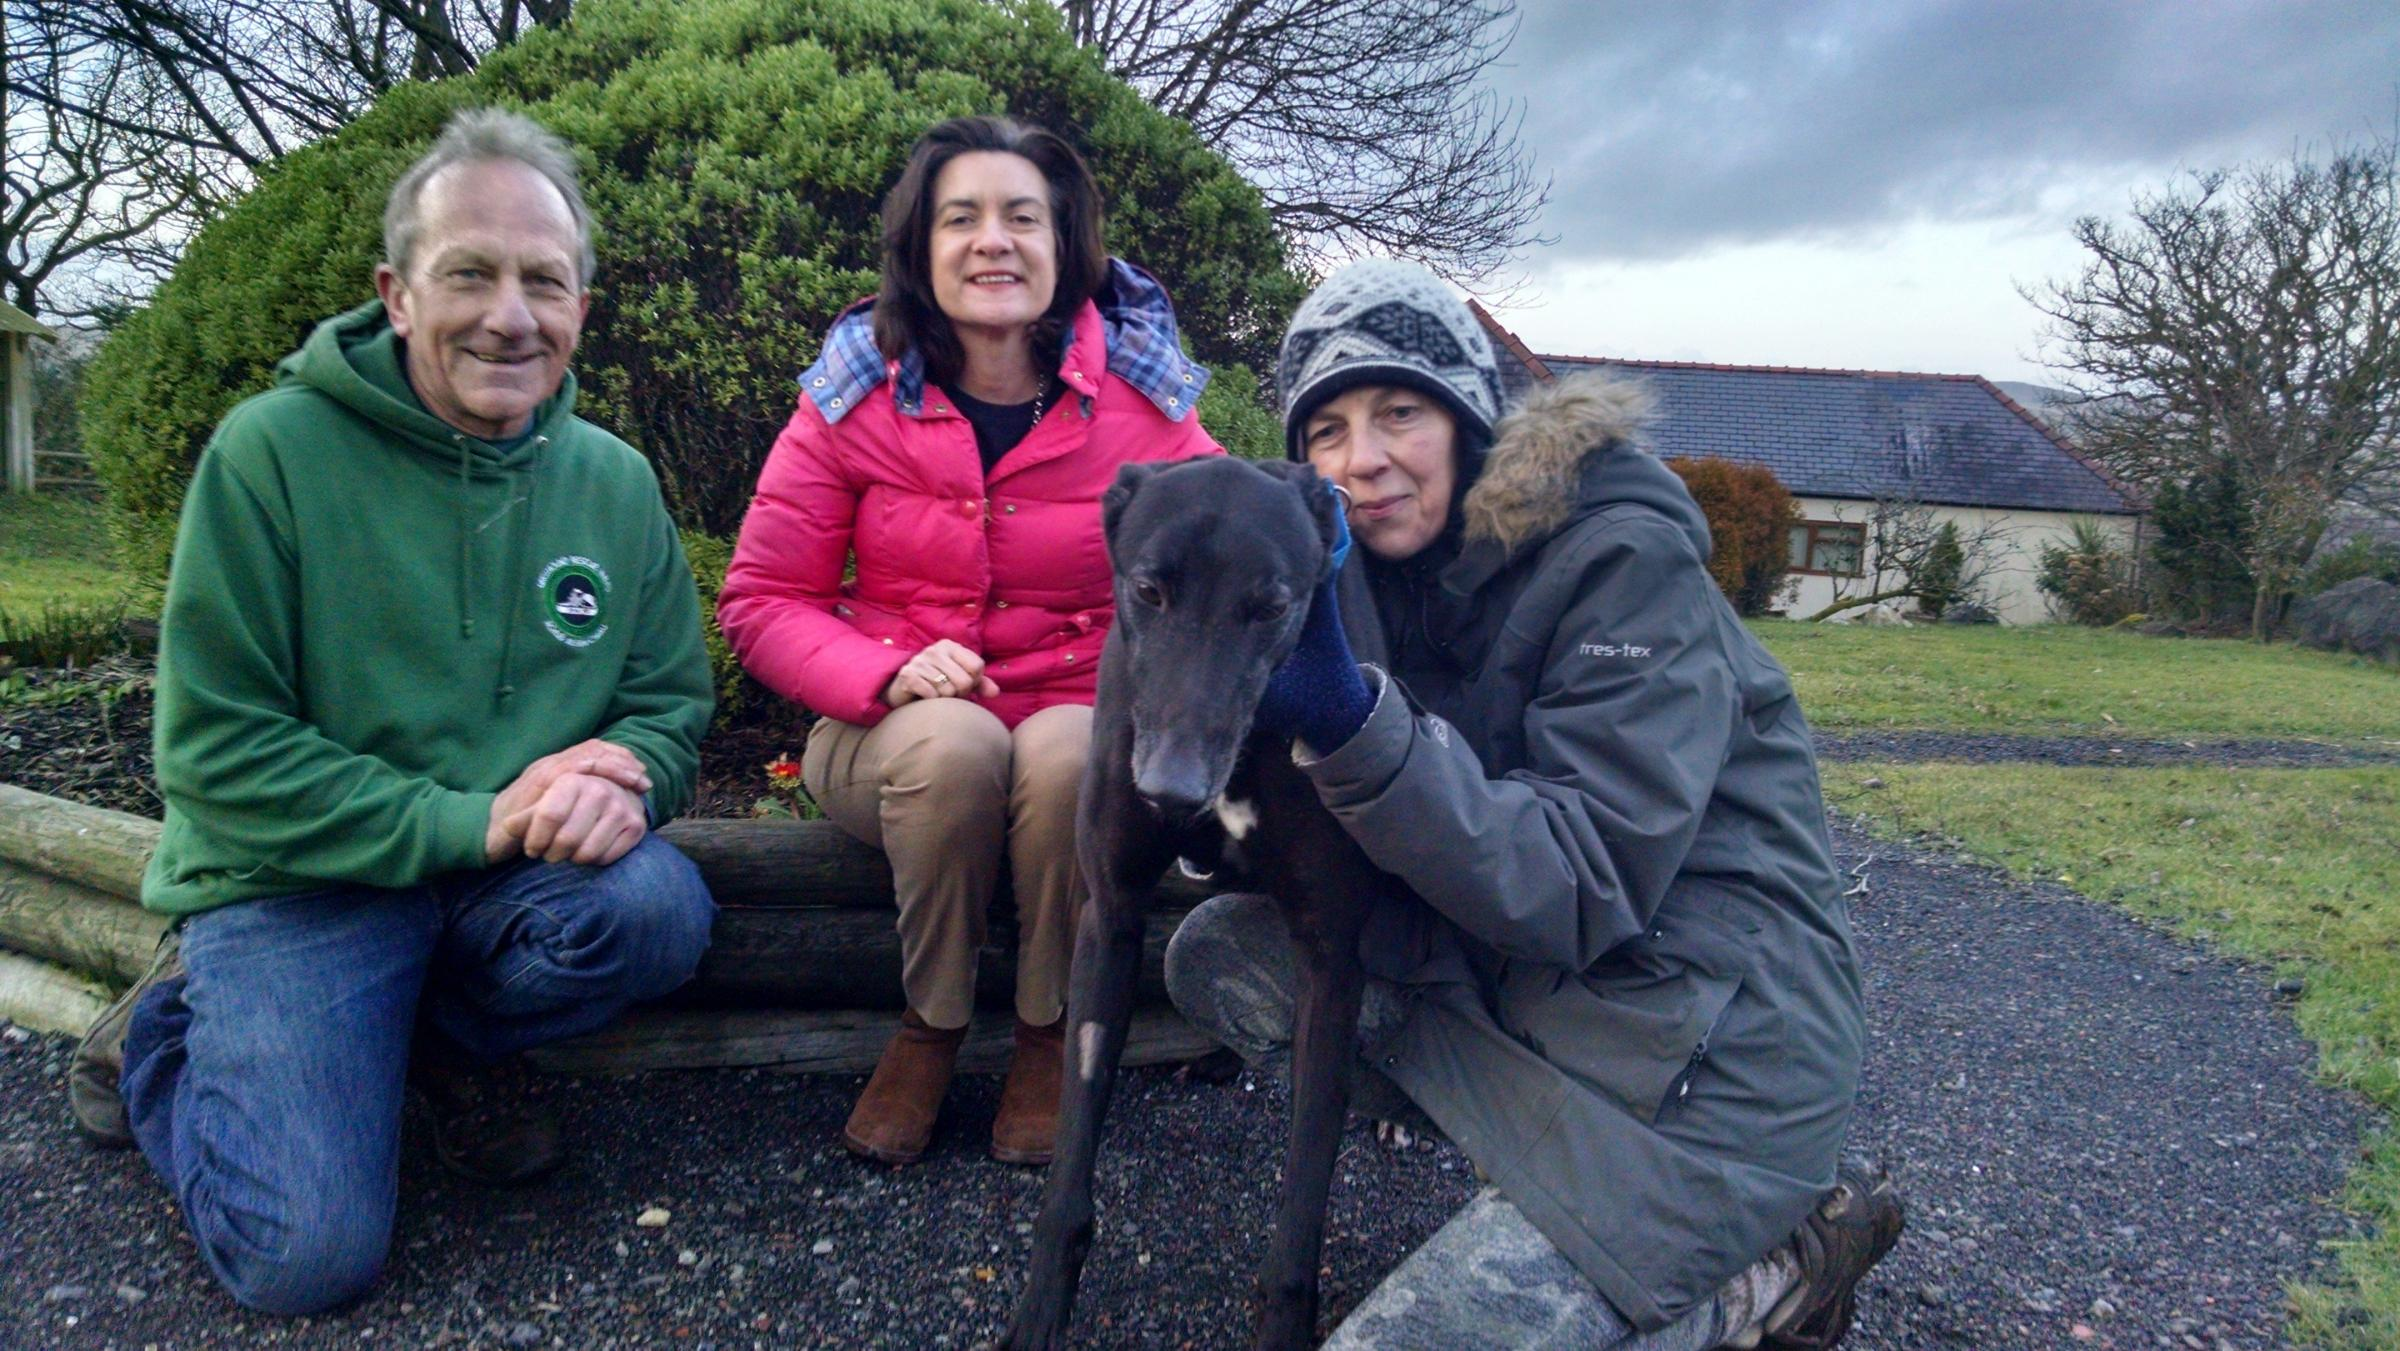 GRW founder Alain Thomas, Eluned Morgan AM and Hillcrest assistant manager Sandra Wynne, with former racing greyhound Jax